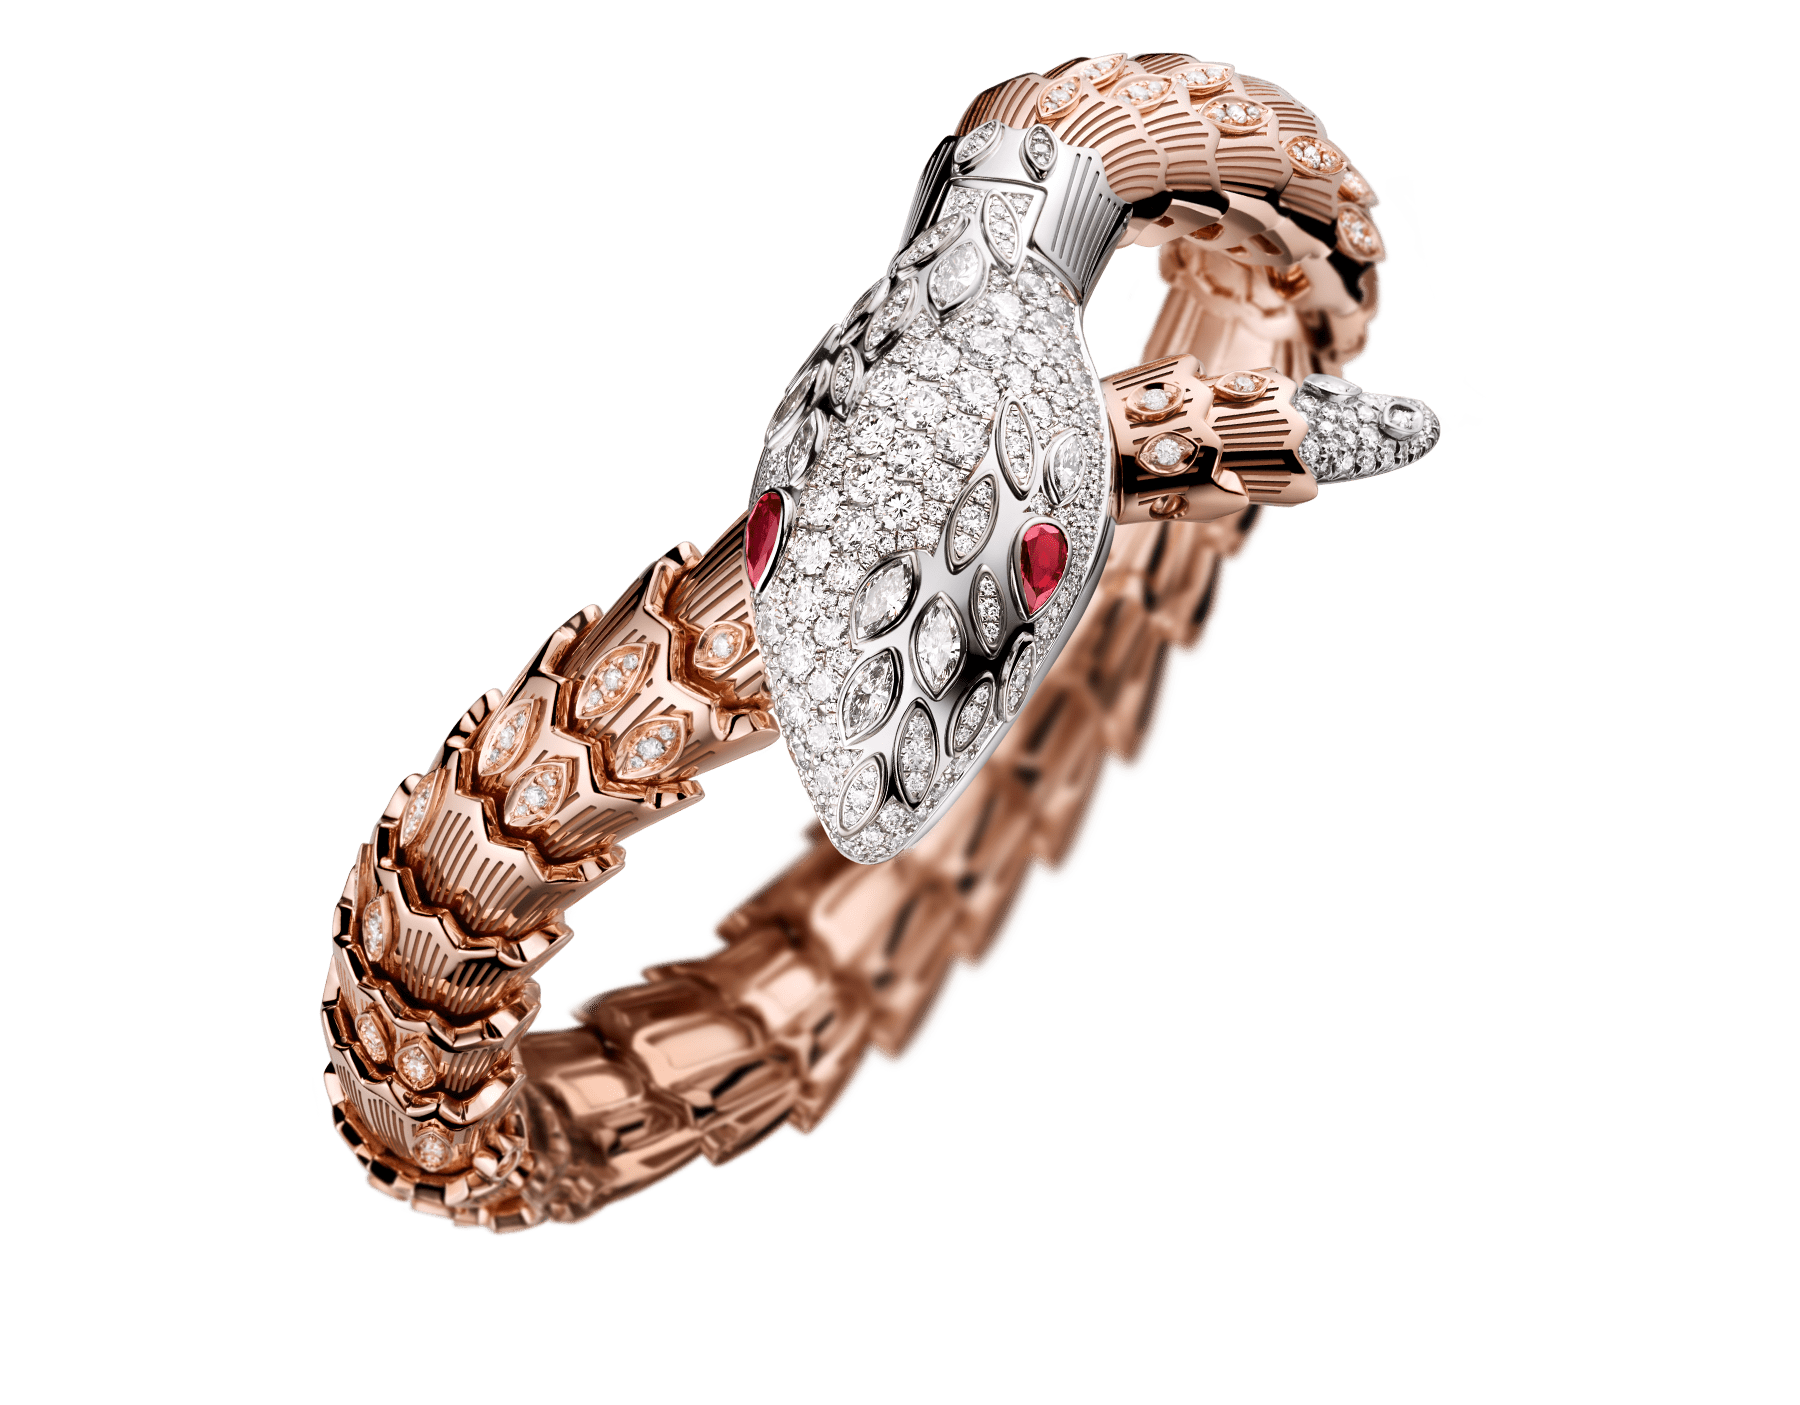 Montre secrète Serpenti avec tête en or blanc 18 K sertie de diamants taille brillant et marquise et yeux en rubis, boîtier en or blanc 18 K, cadran en or blanc 18 K serti de diamants taille brillant, bracelet une spirale en or rose et or blanc 18 K serti de diamants taille brillant. 102239 image 2